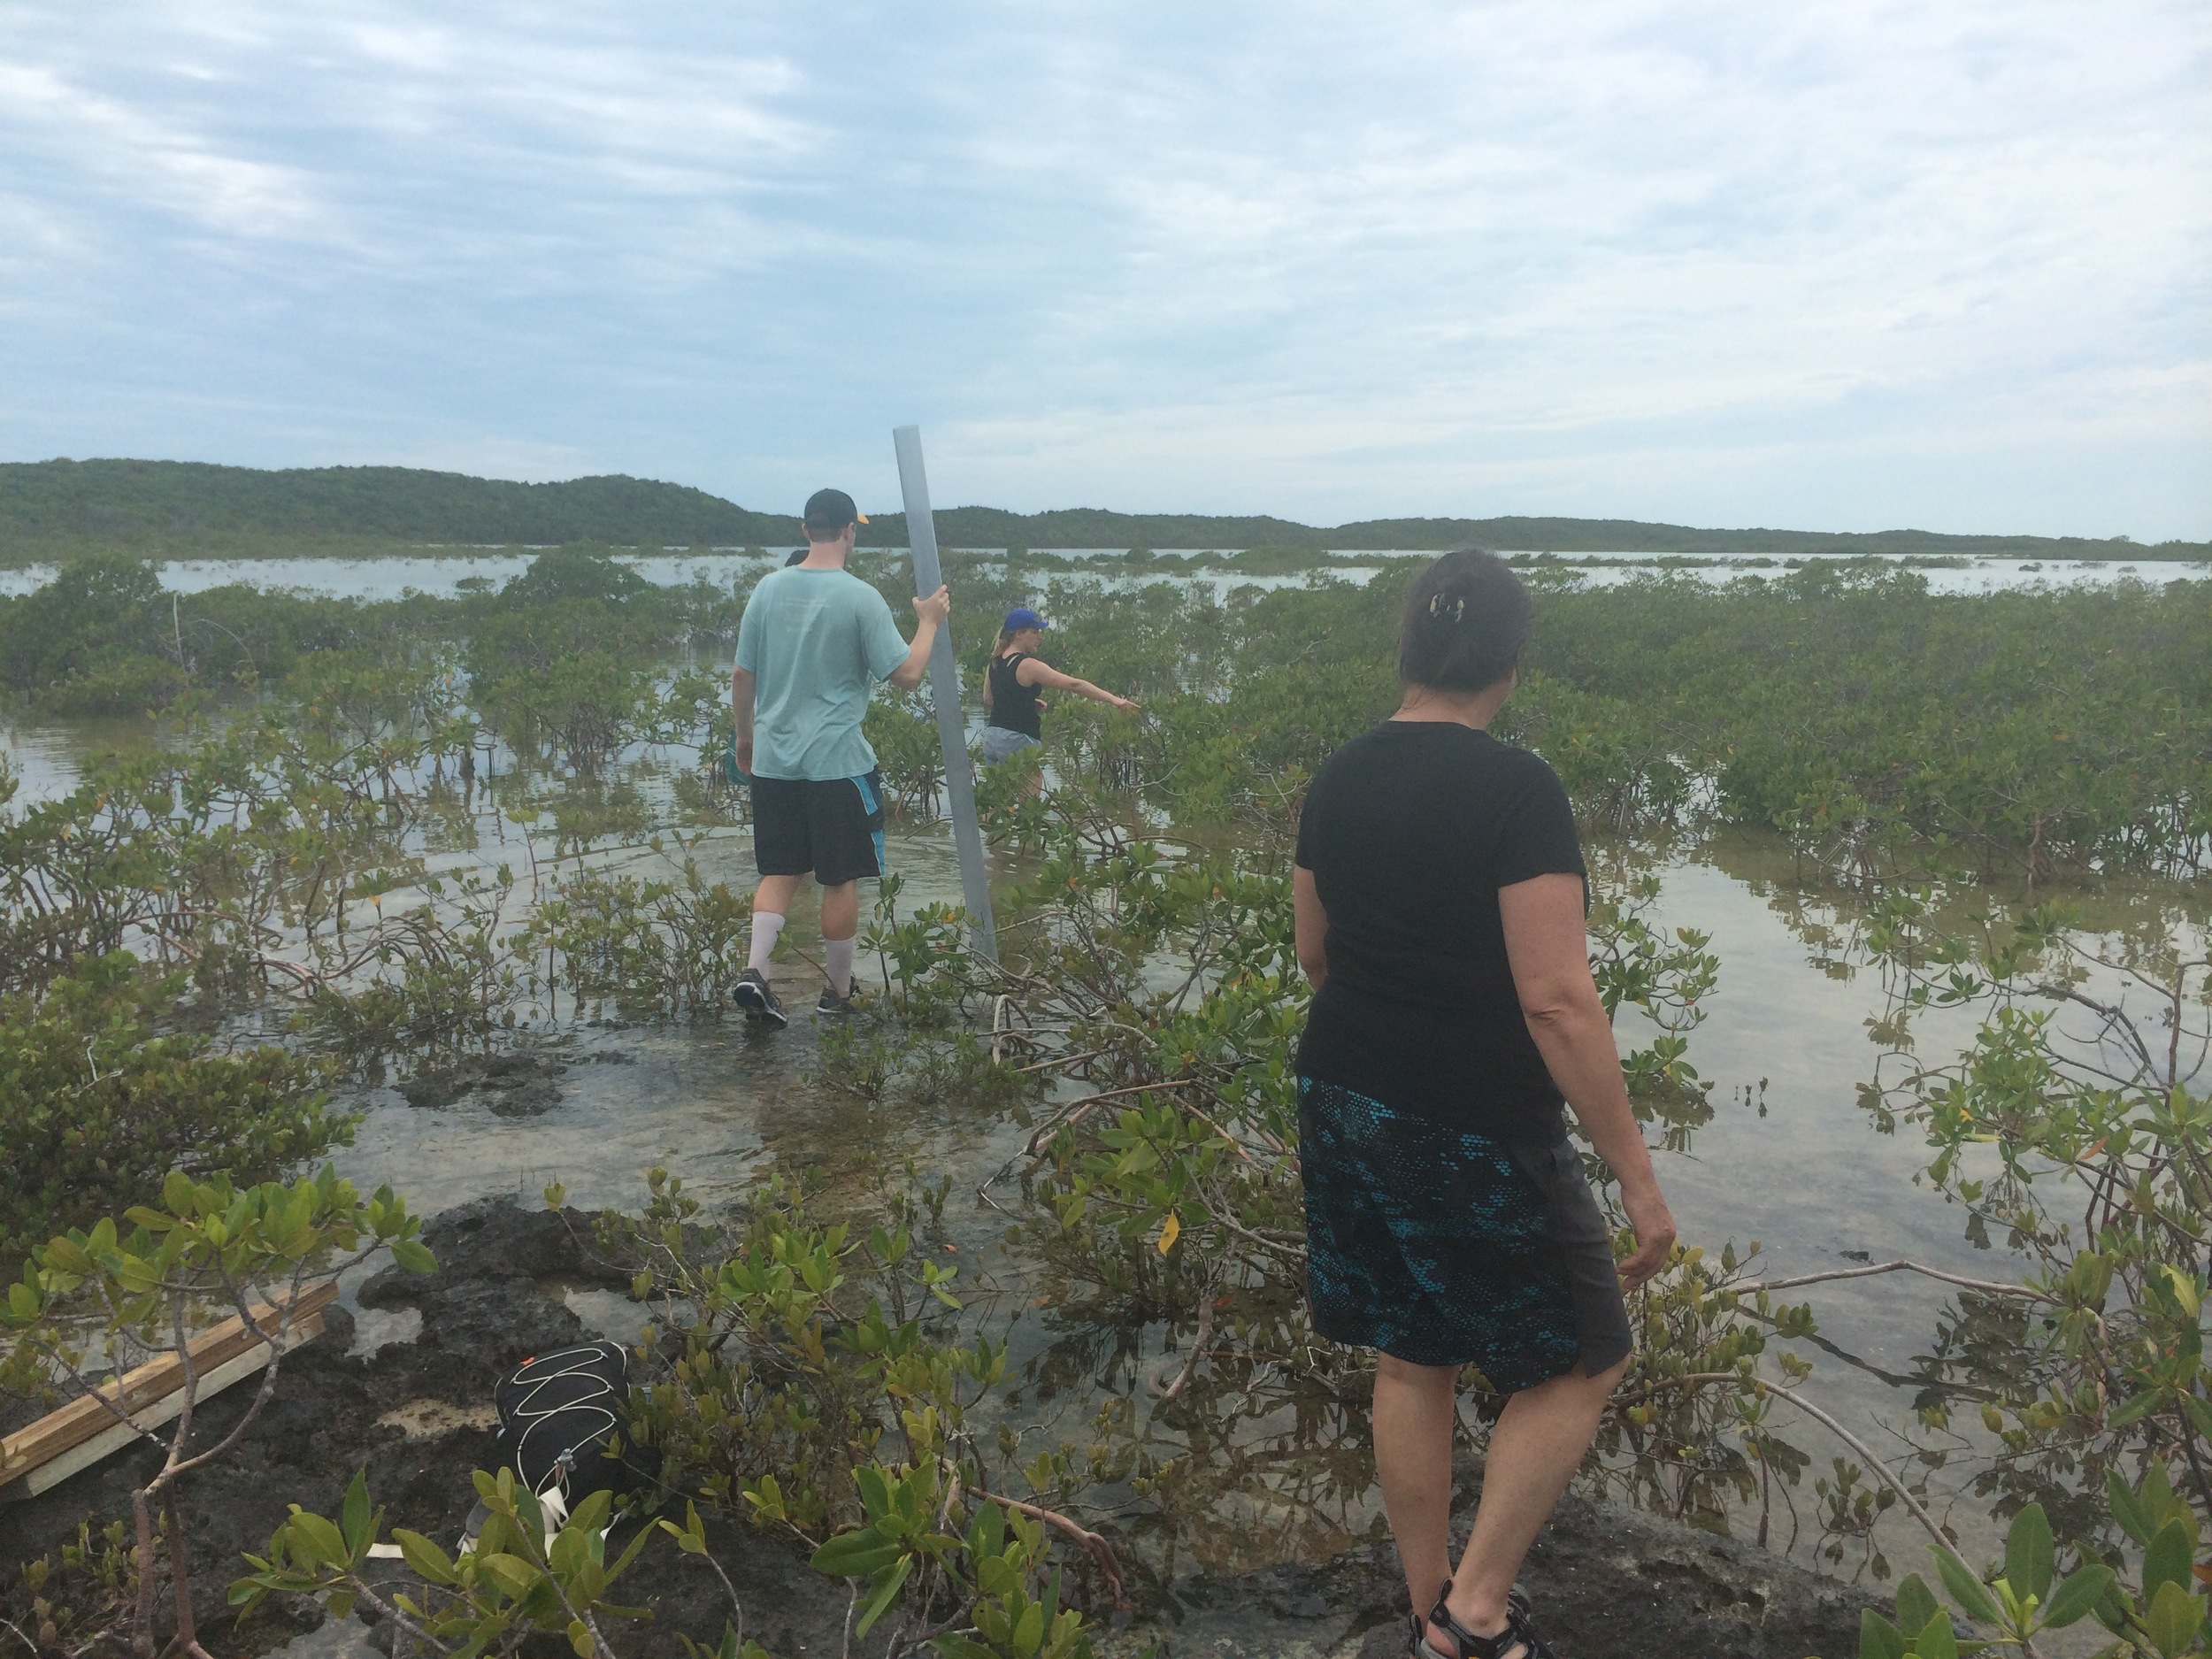 Sediment coring in a mangrove swamp in the Bahamas.